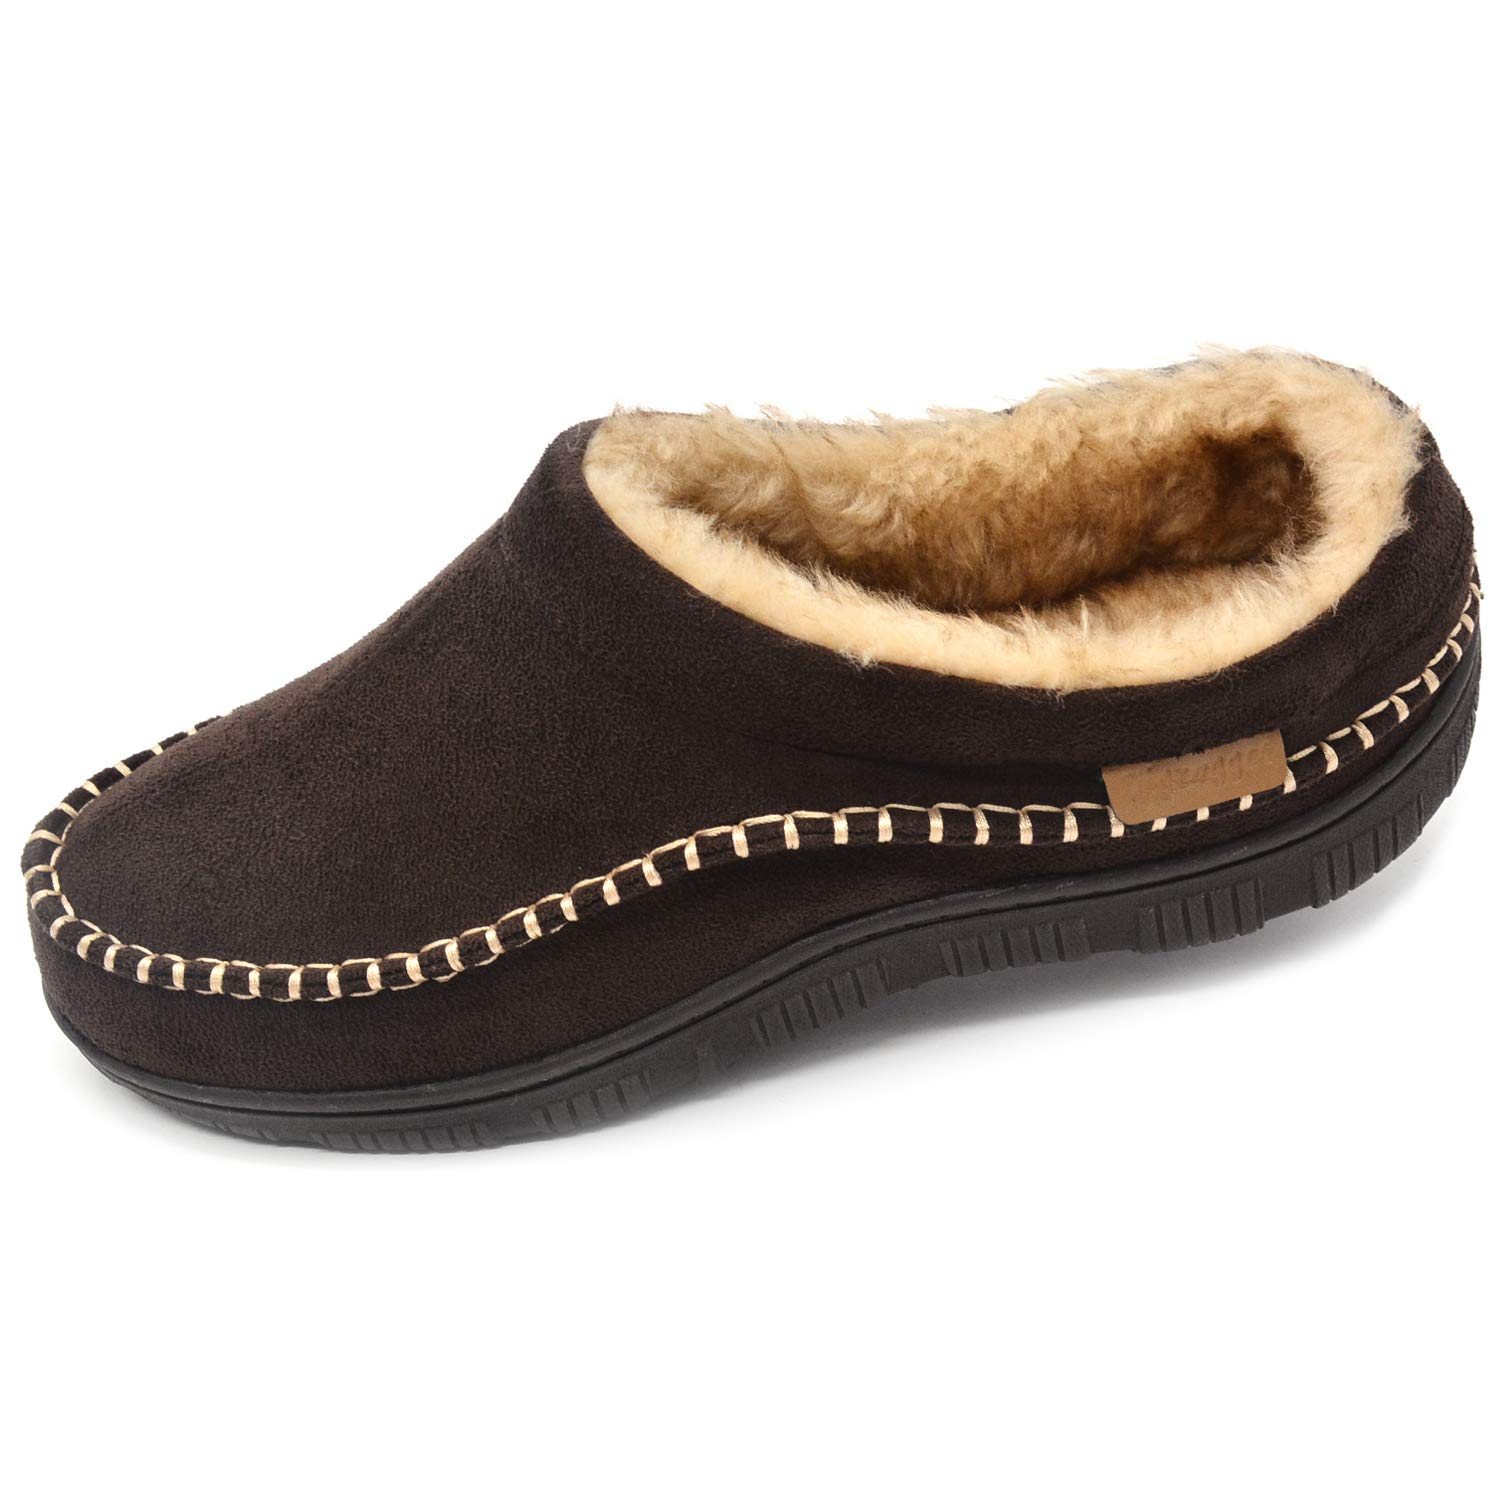 Zigzagger Men's Microsuede Moccasin Slippers, Versatile Indoor-Outdoor House Shoes